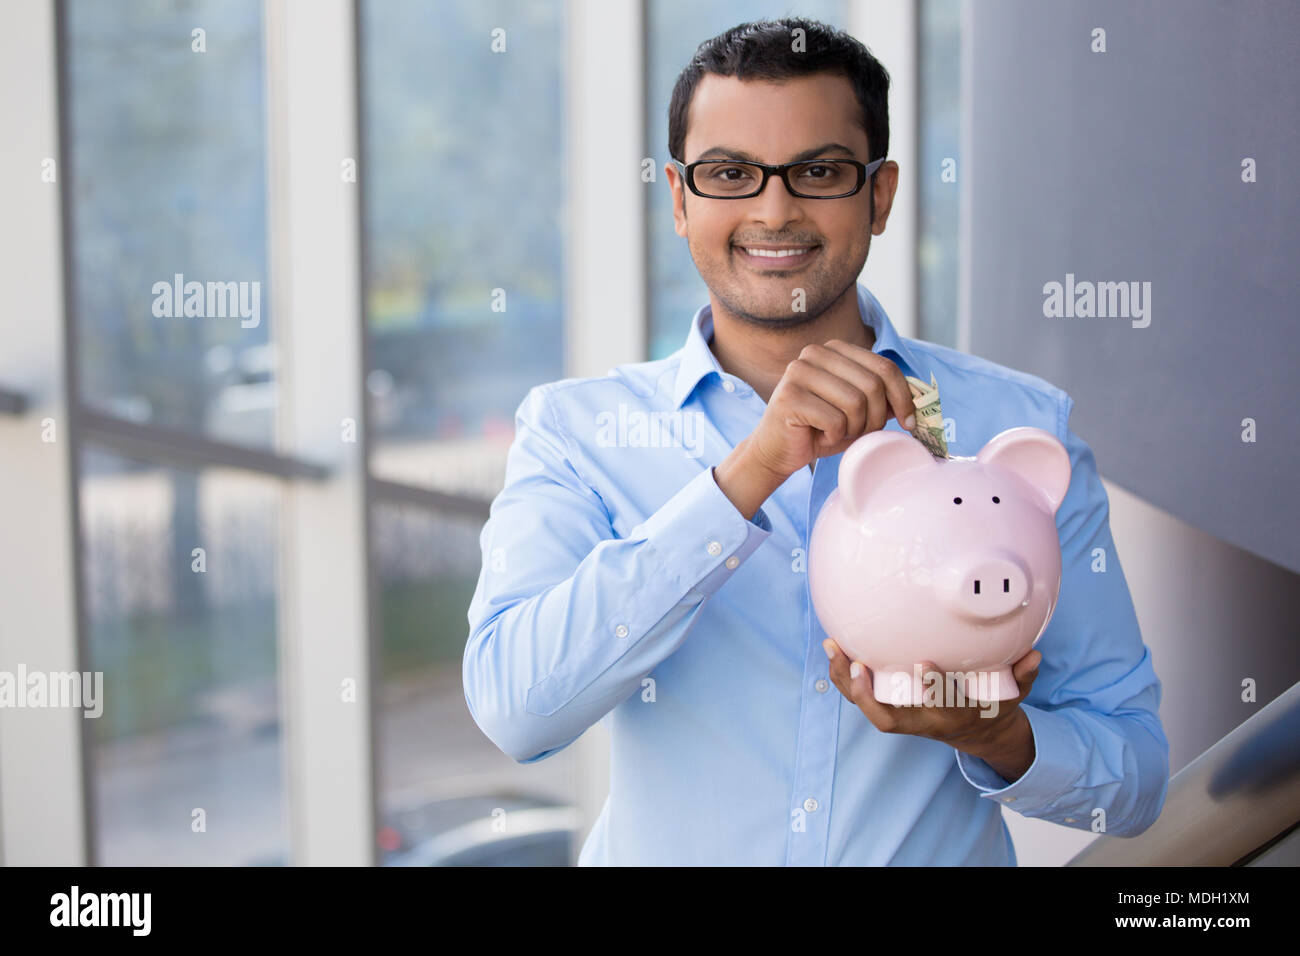 Closeup portrait, young business man in blue shirt, black glasses, putting money in piggy bank, isolated indoor glass background, management and savin - Stock Image